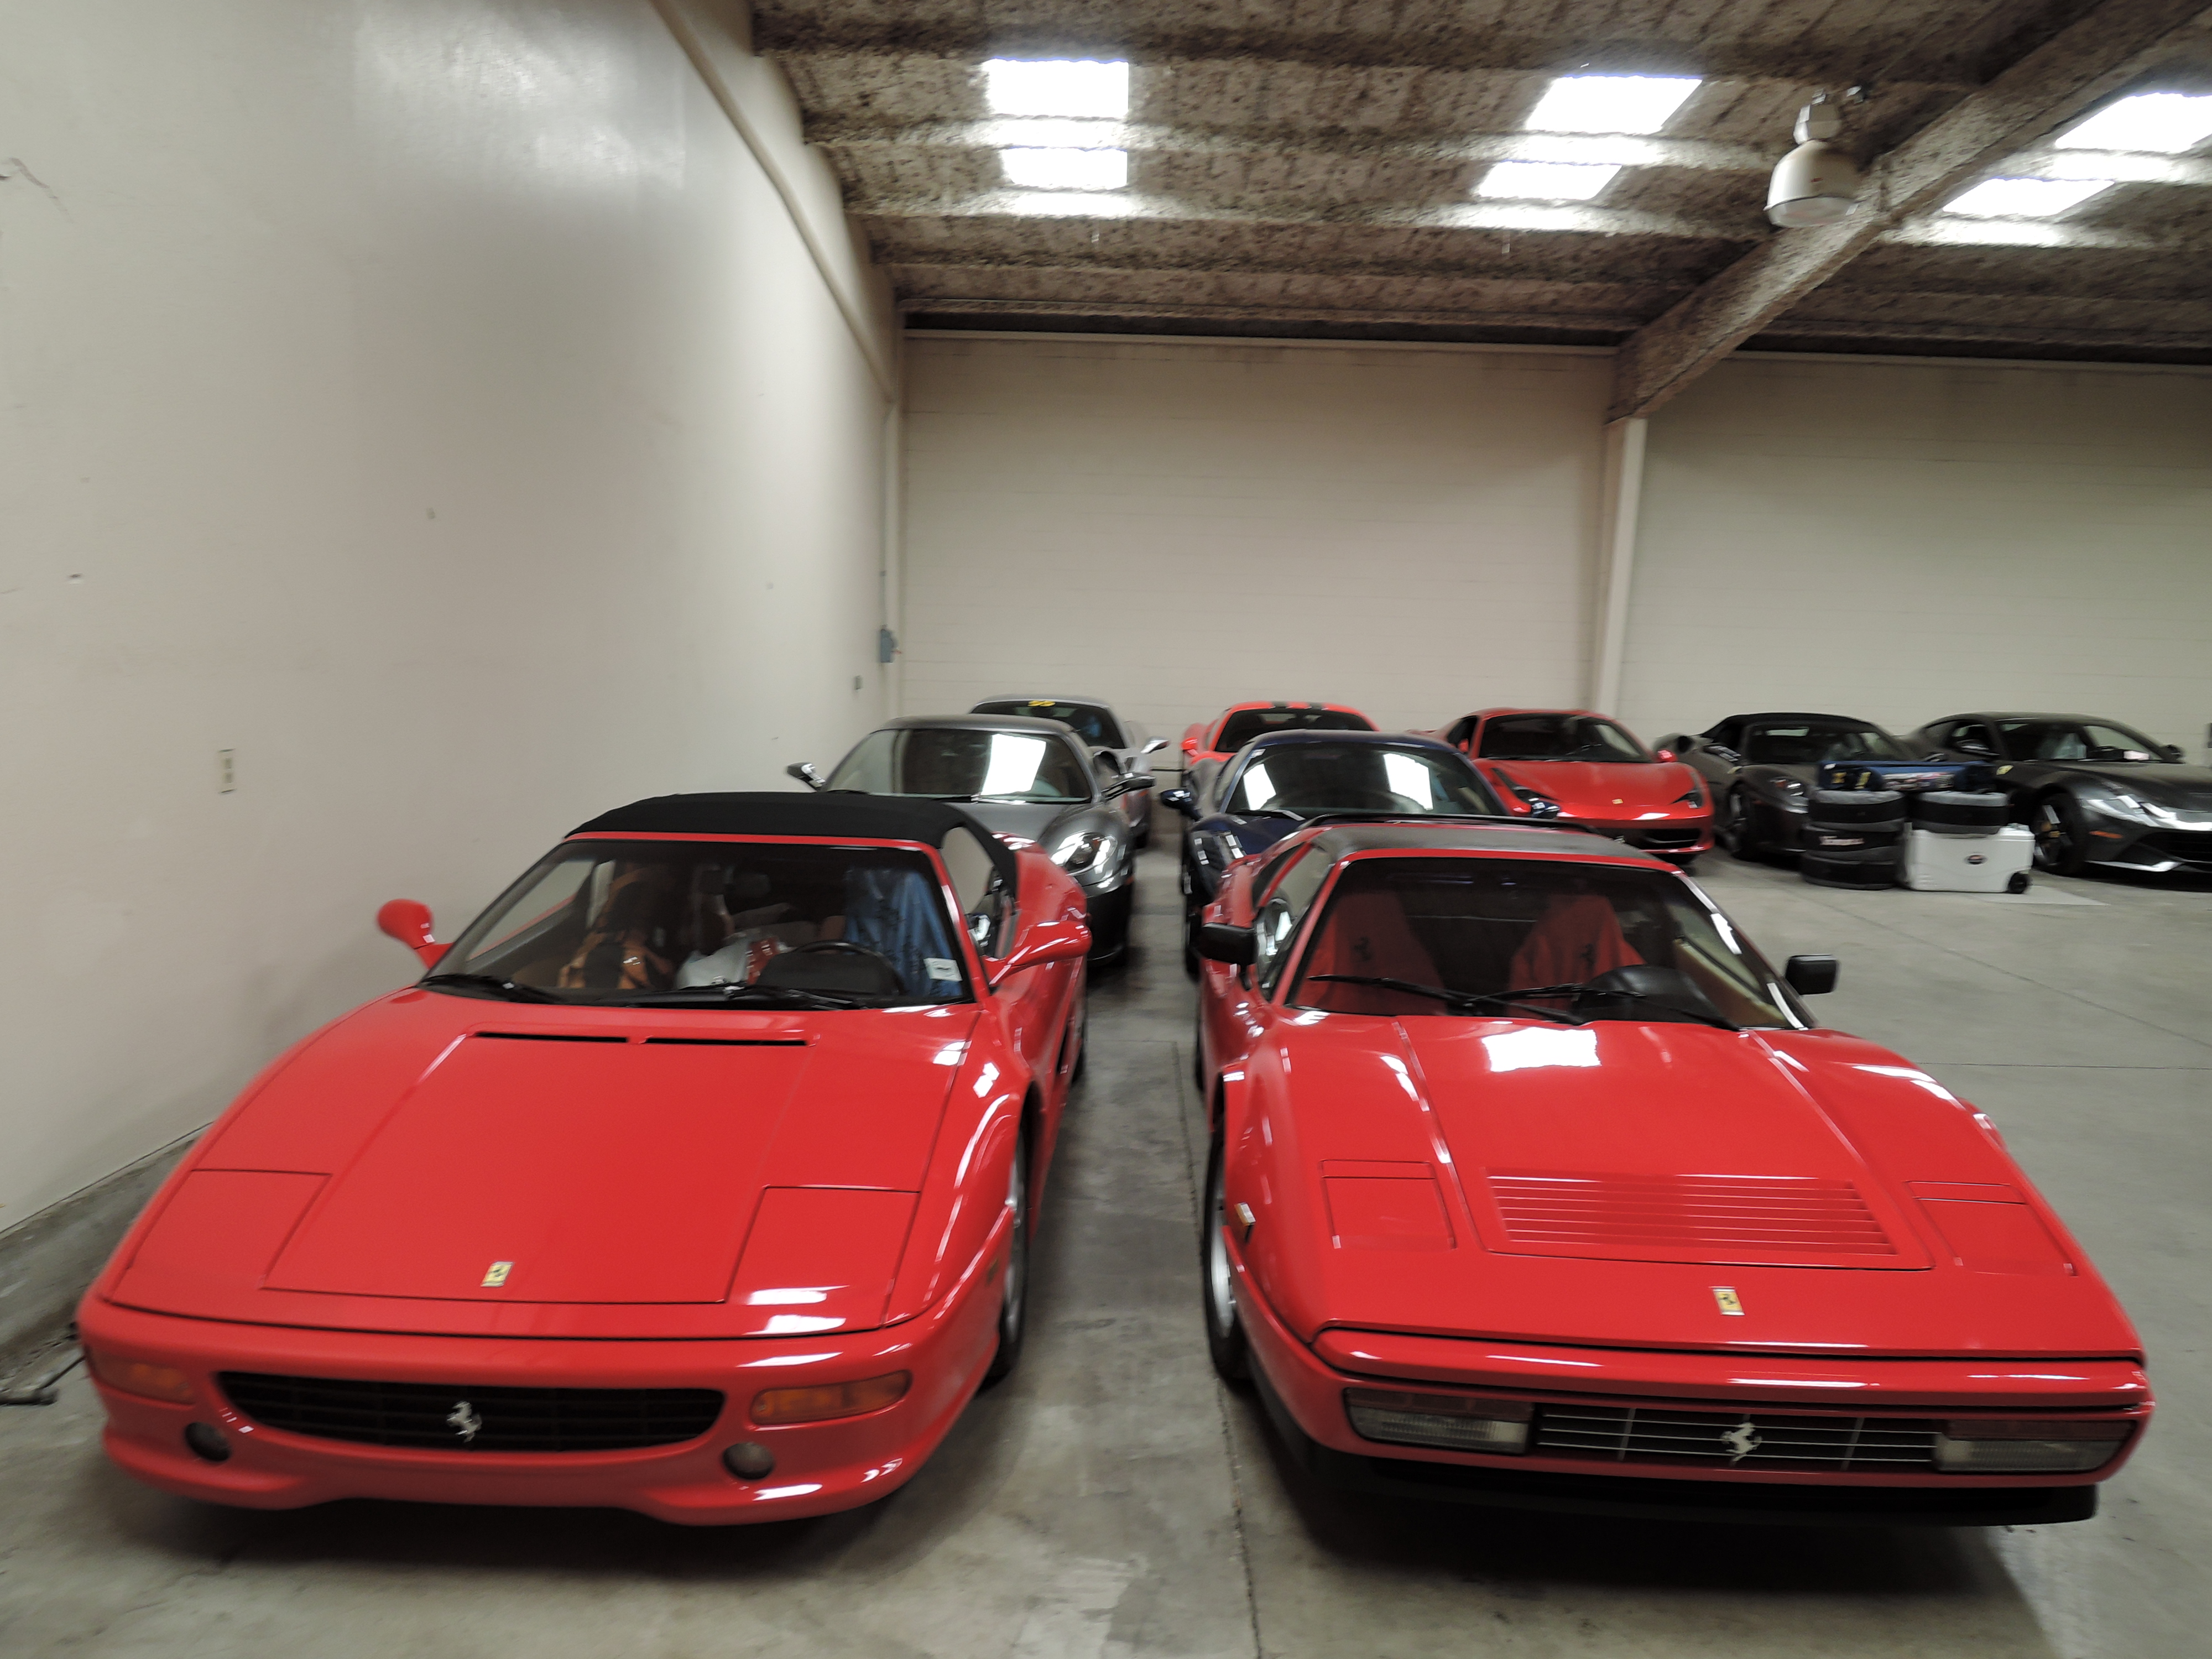 red Ferrari 355 and Ferrari 328 - monterey car week 2015